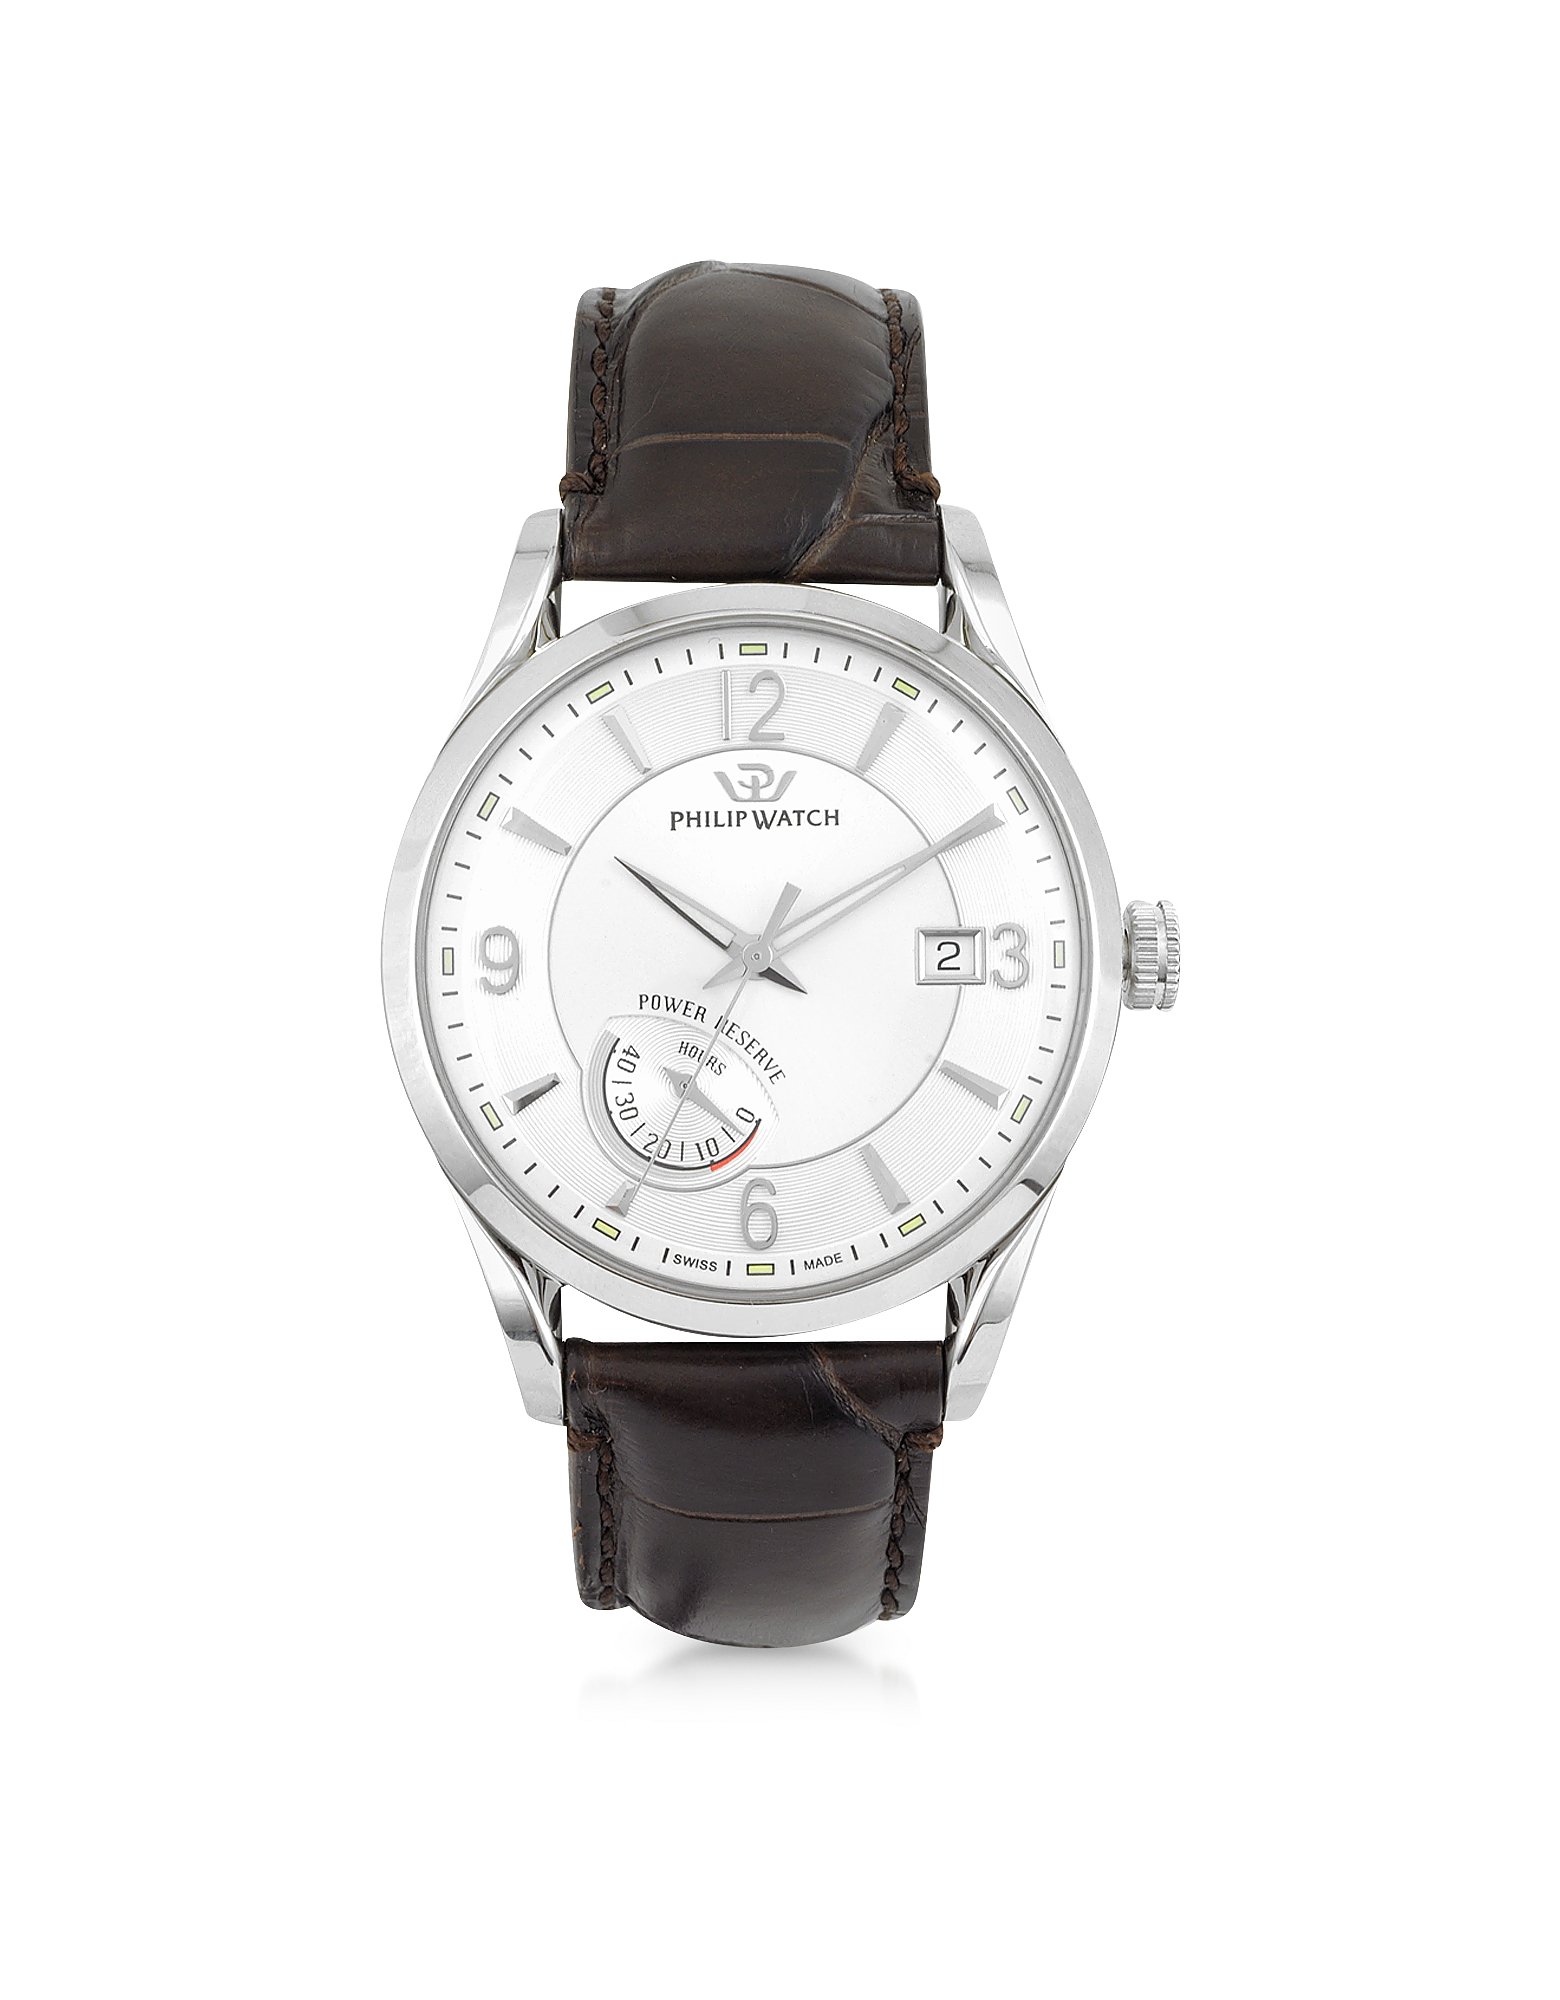 Philip Watch Men's Watches, Heritage Sunray Automatic Men's Watch